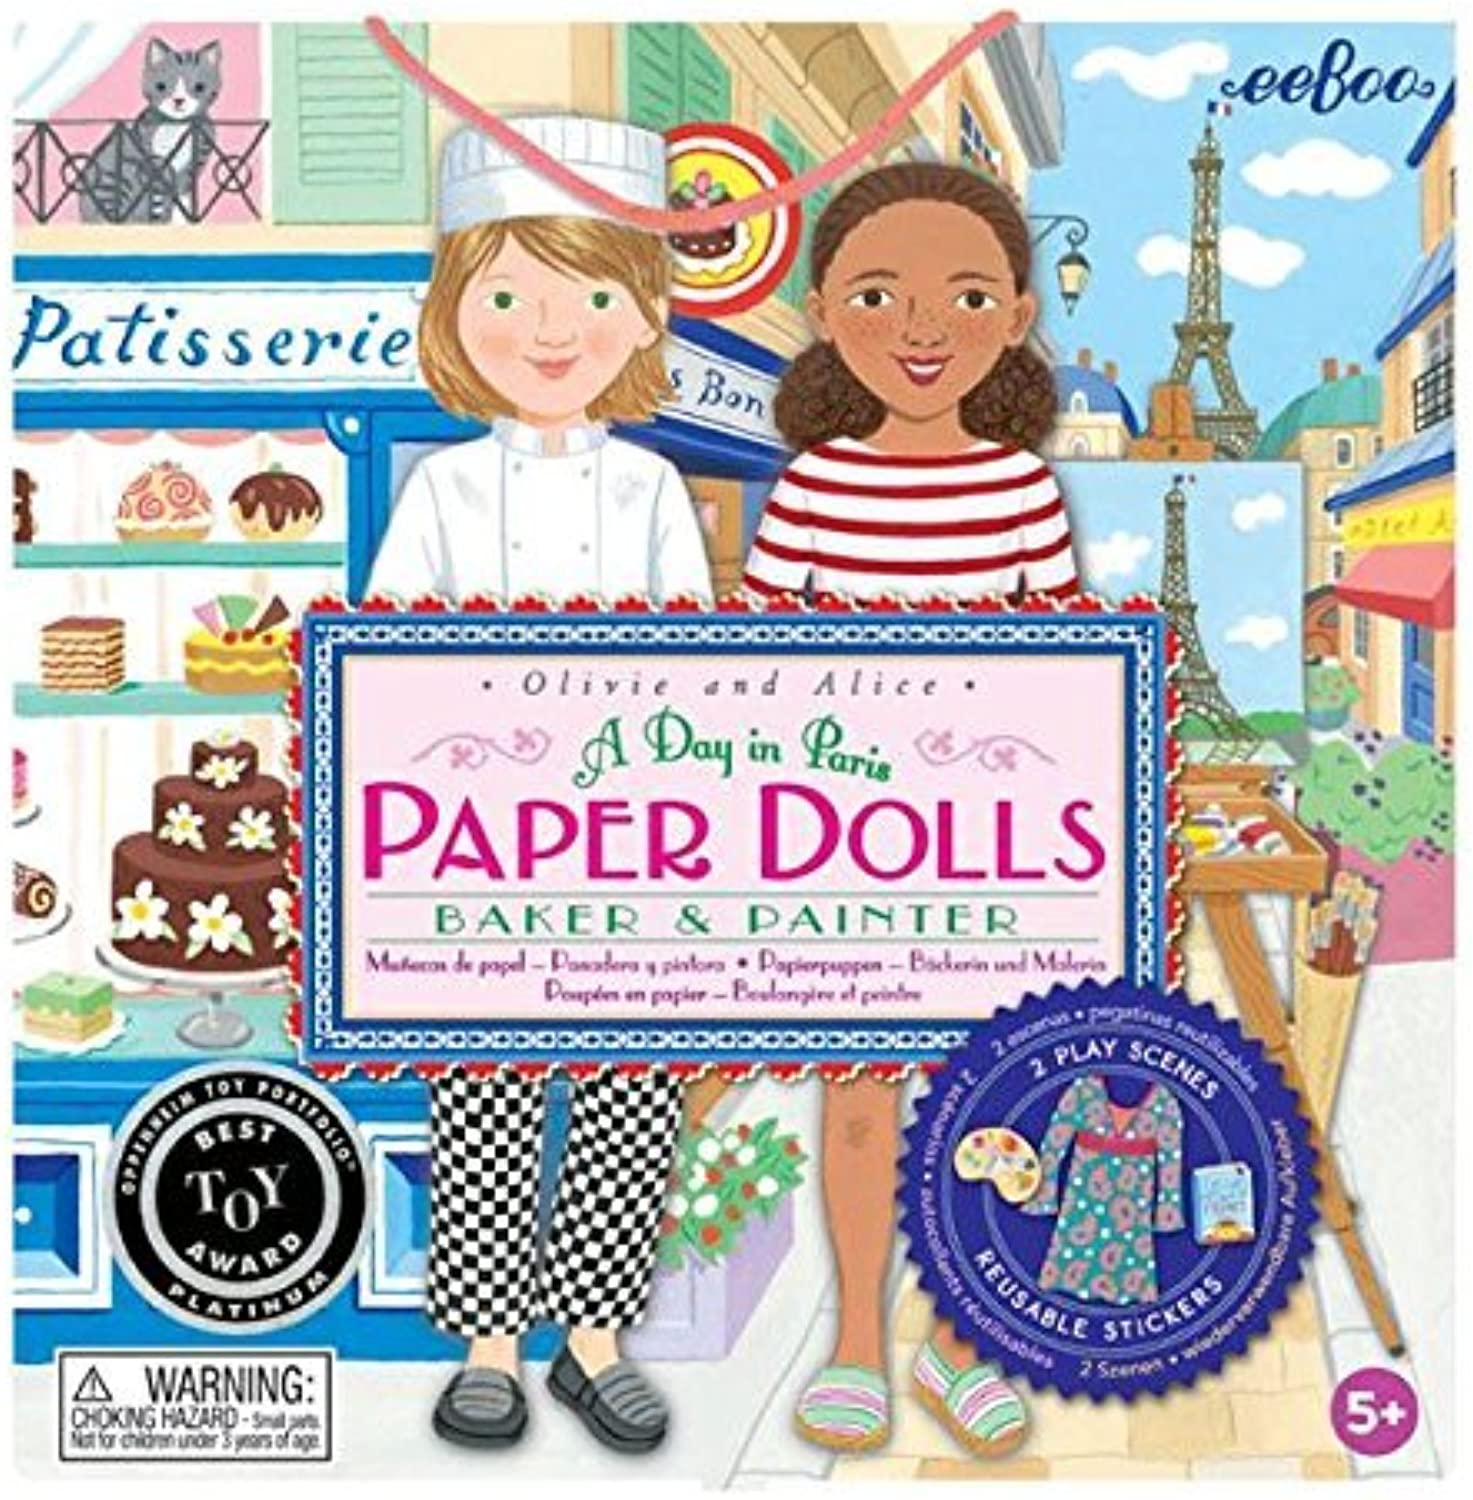 Baker and Painter Paper Dolls by eeBoo